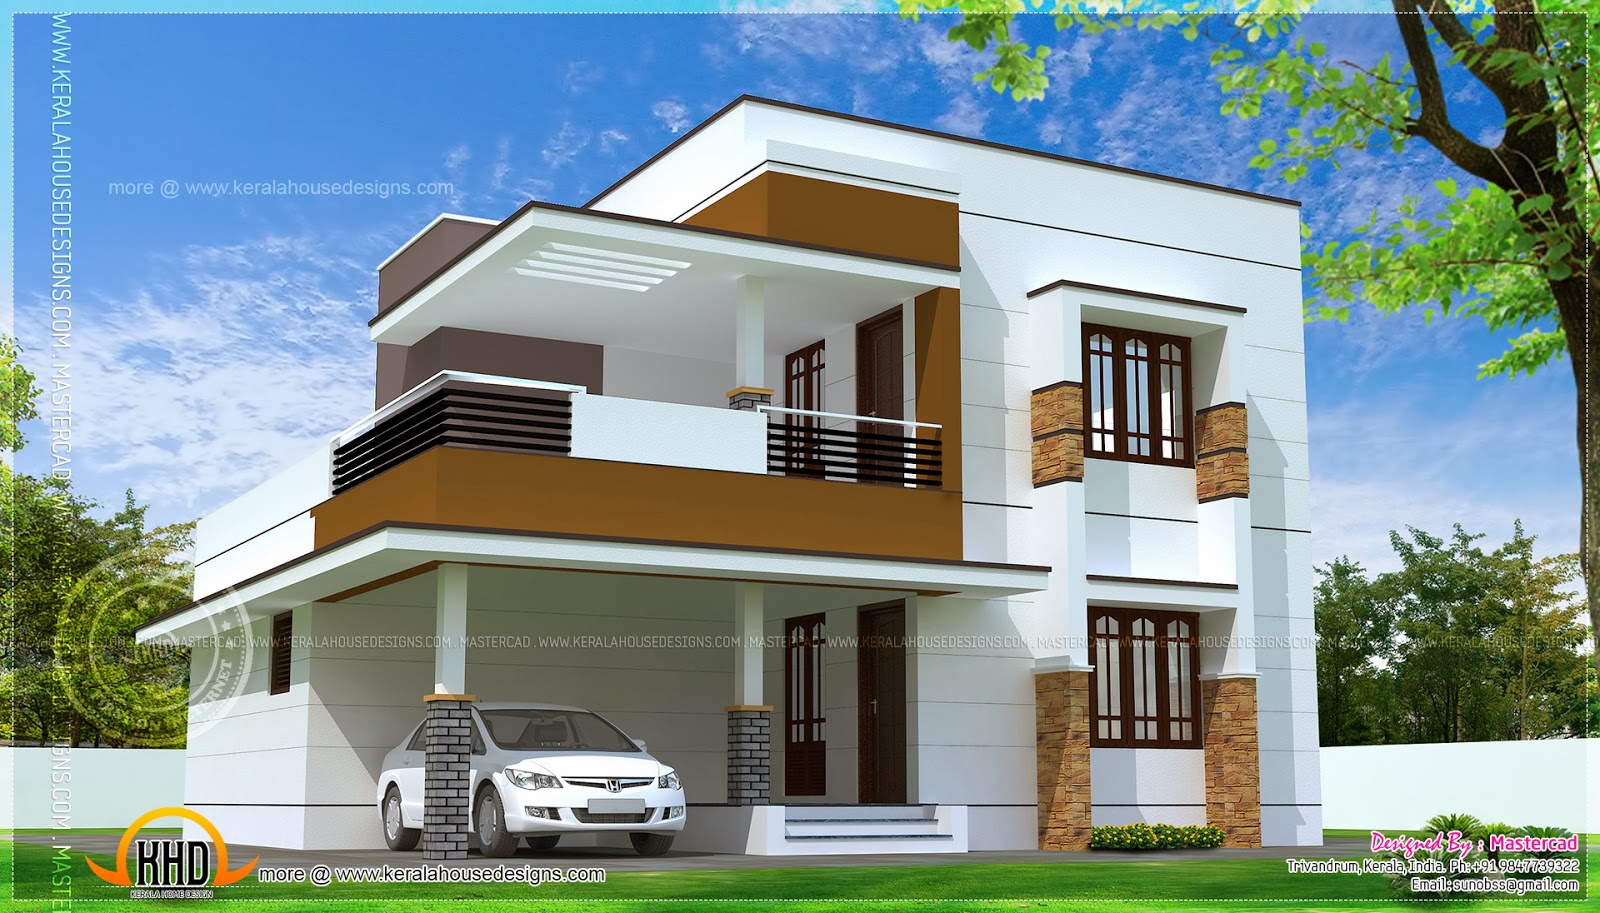 November 2013 kerala home design and floor plans Home design plans